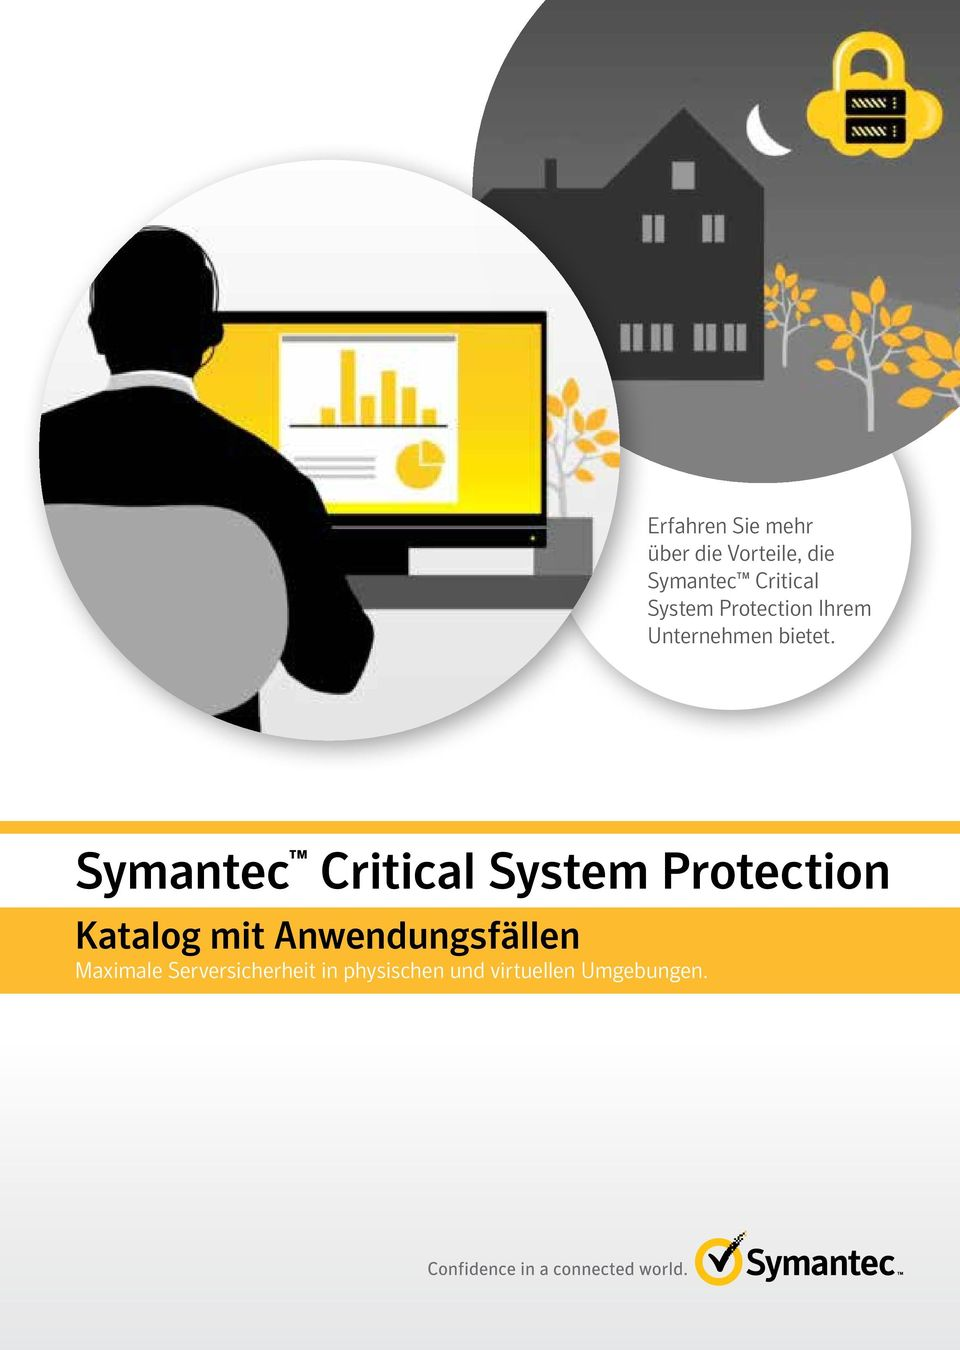 Symantec Critical System Protection Katalog mit